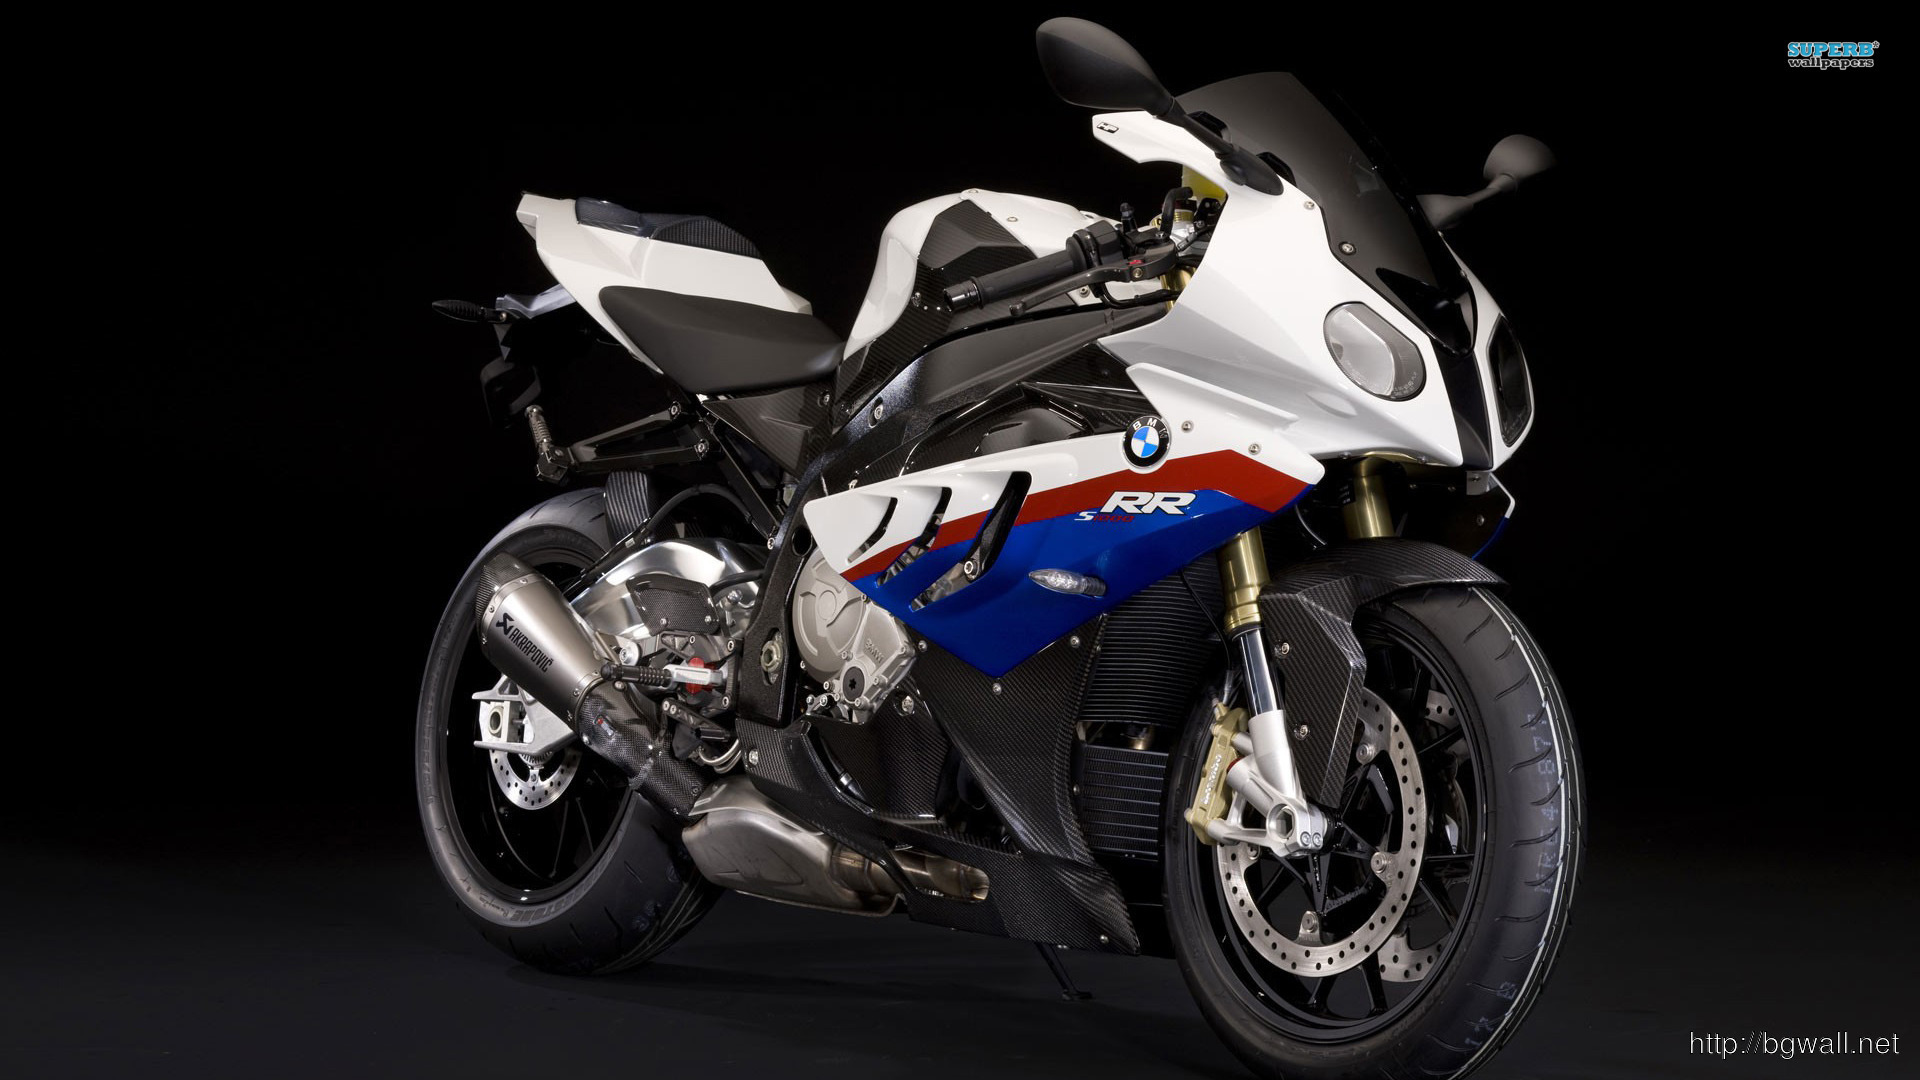 Bmw S1000rr Wallpaper Full Size